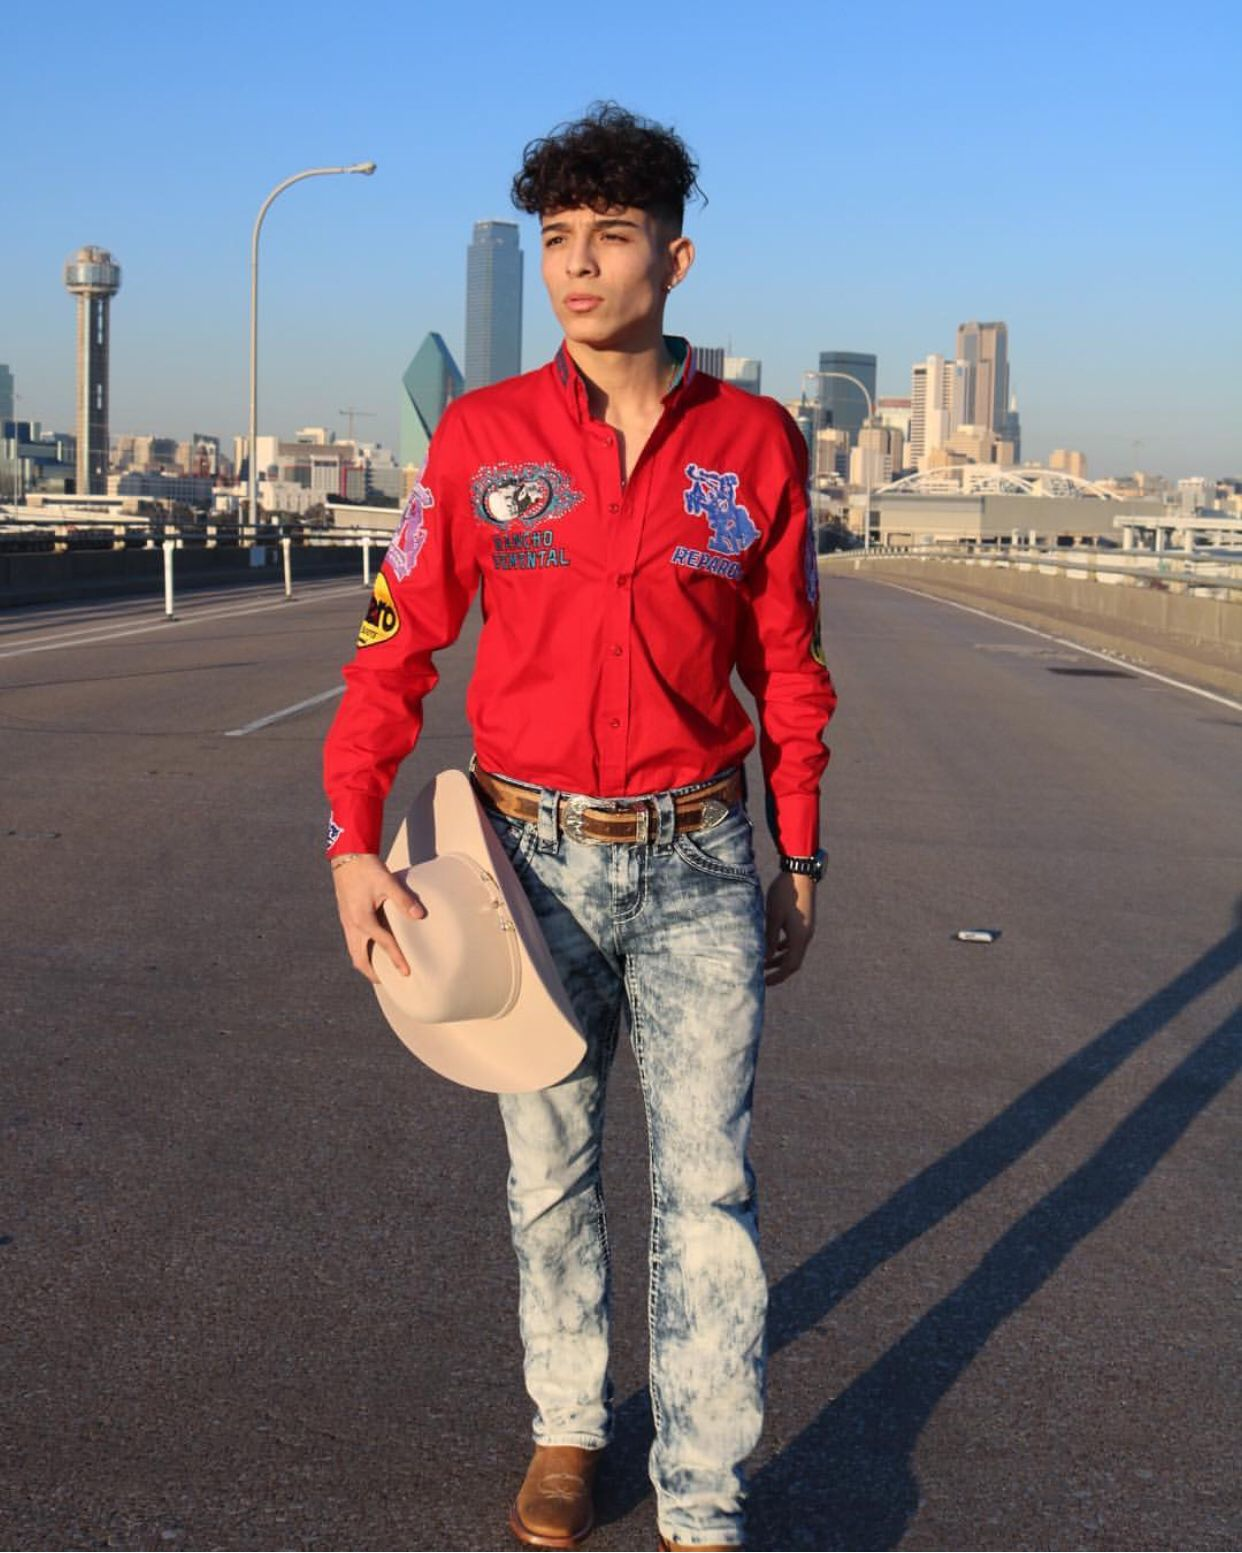 Vaquero Mexican Outfit Cowboy Outfit For Men Cowboy Outfits